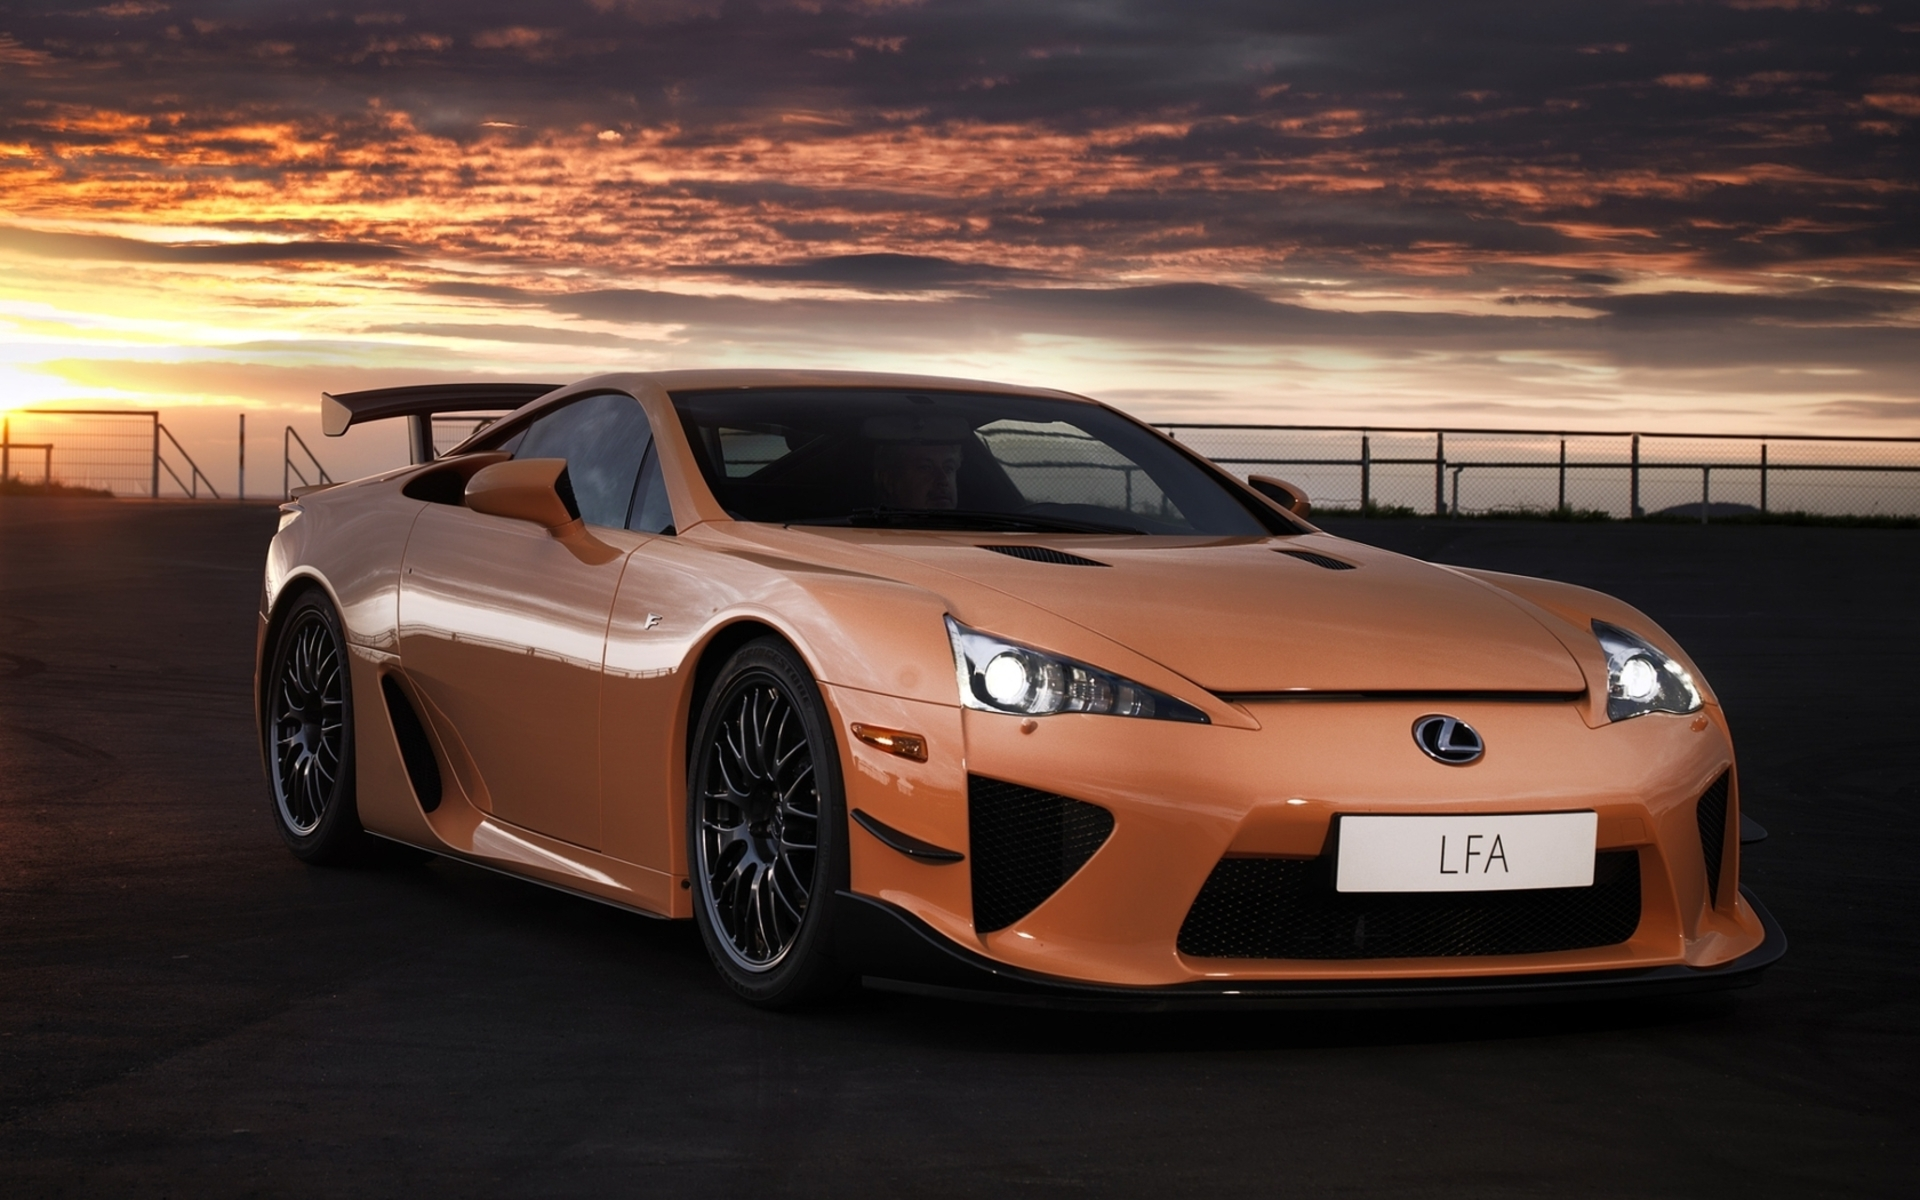 wallpapers lexus lfa - photo #19